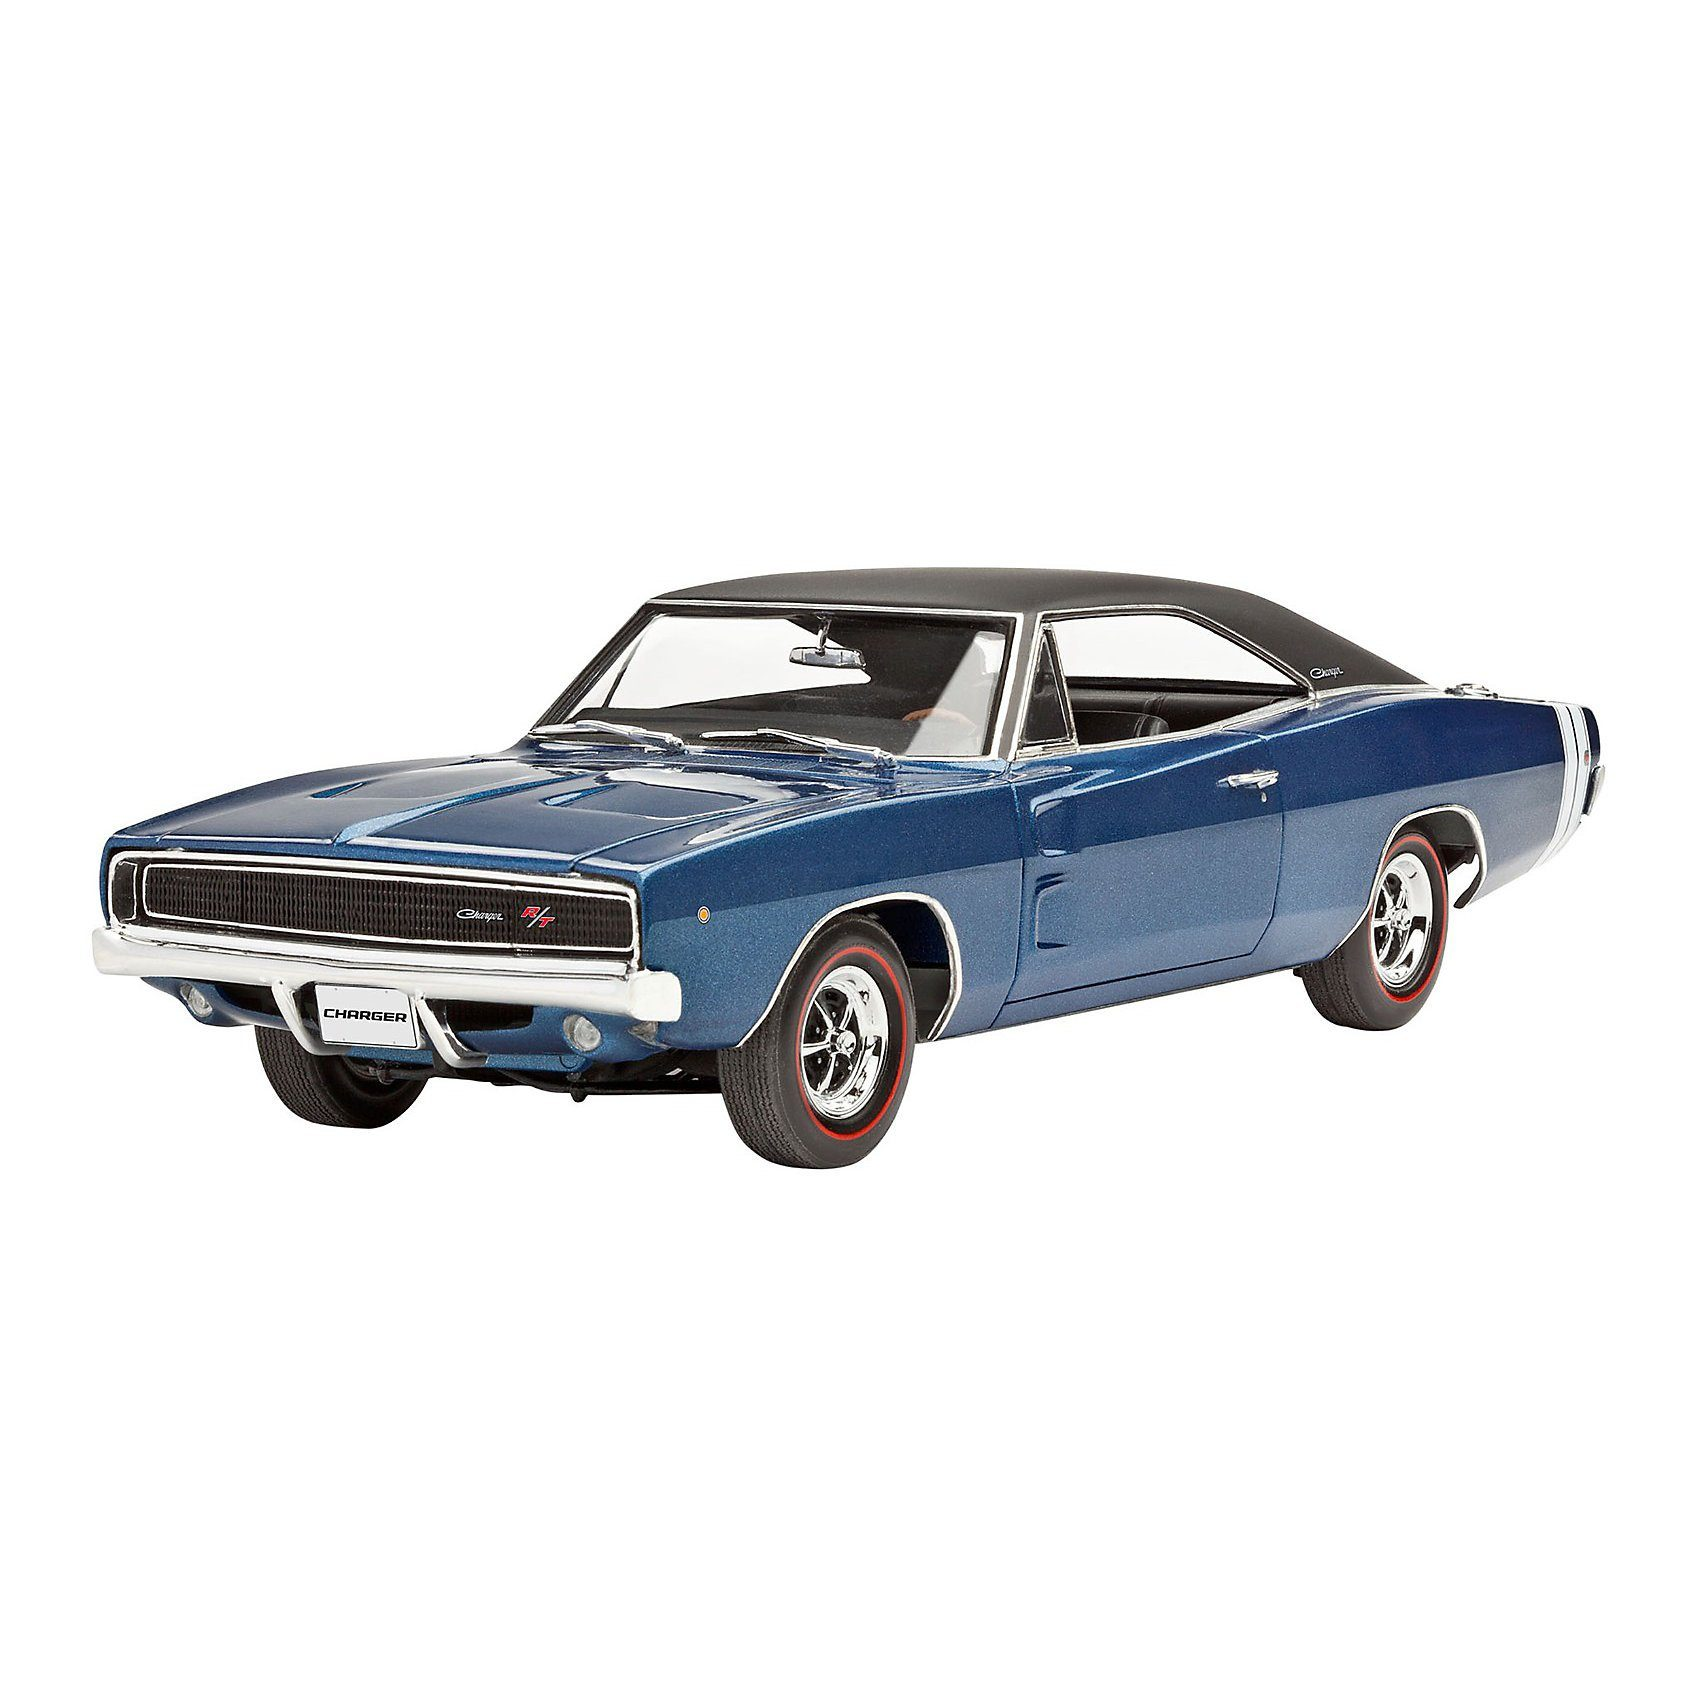 Revell Modellbausatz Modellbausatz '1968 Dodge Charger (2in1) im Ma